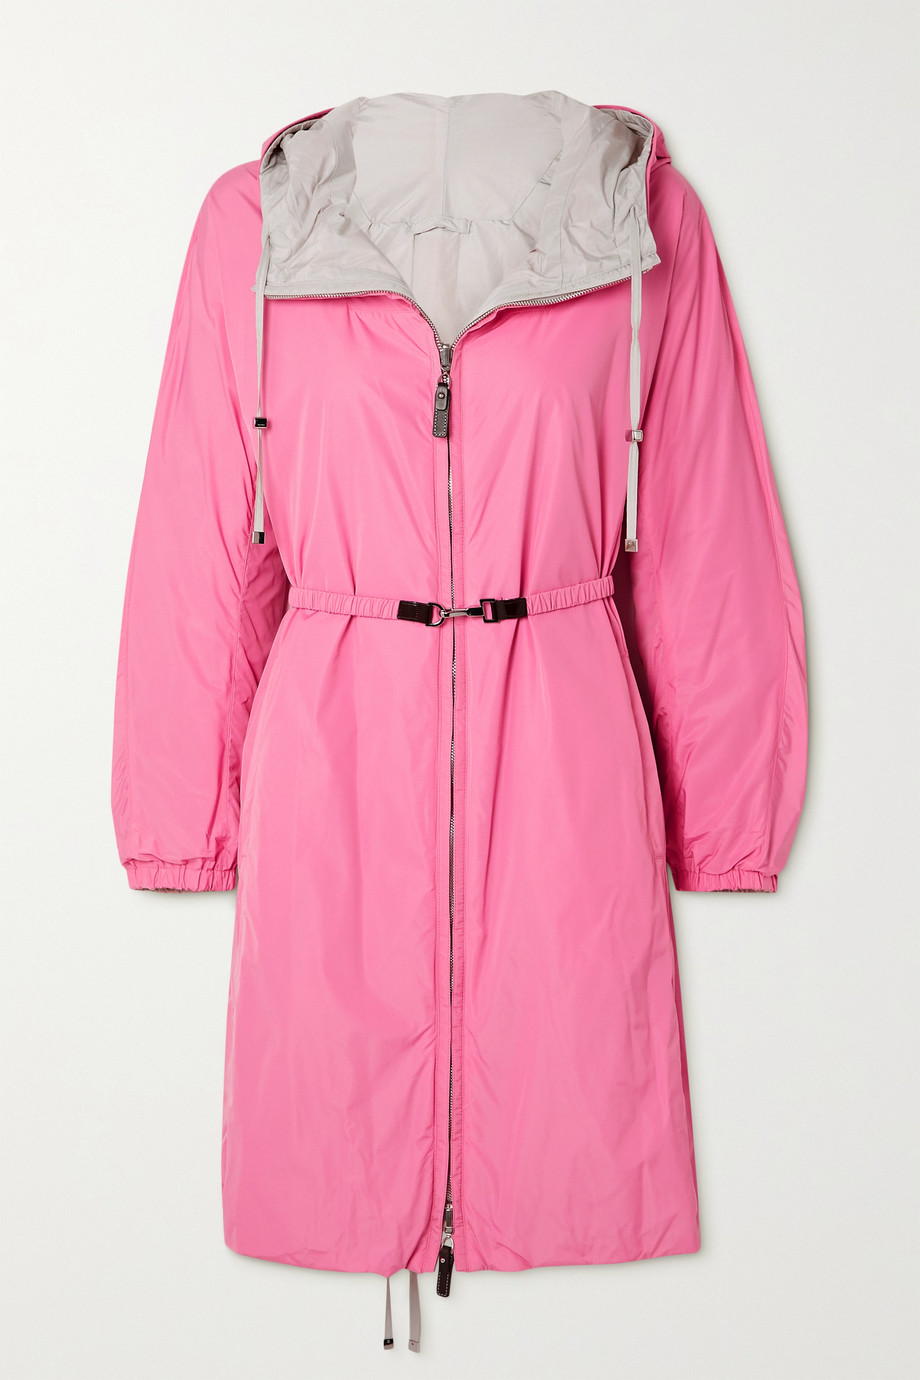 Max Mara The Cube Esporte reversible hooded belted shell jacket